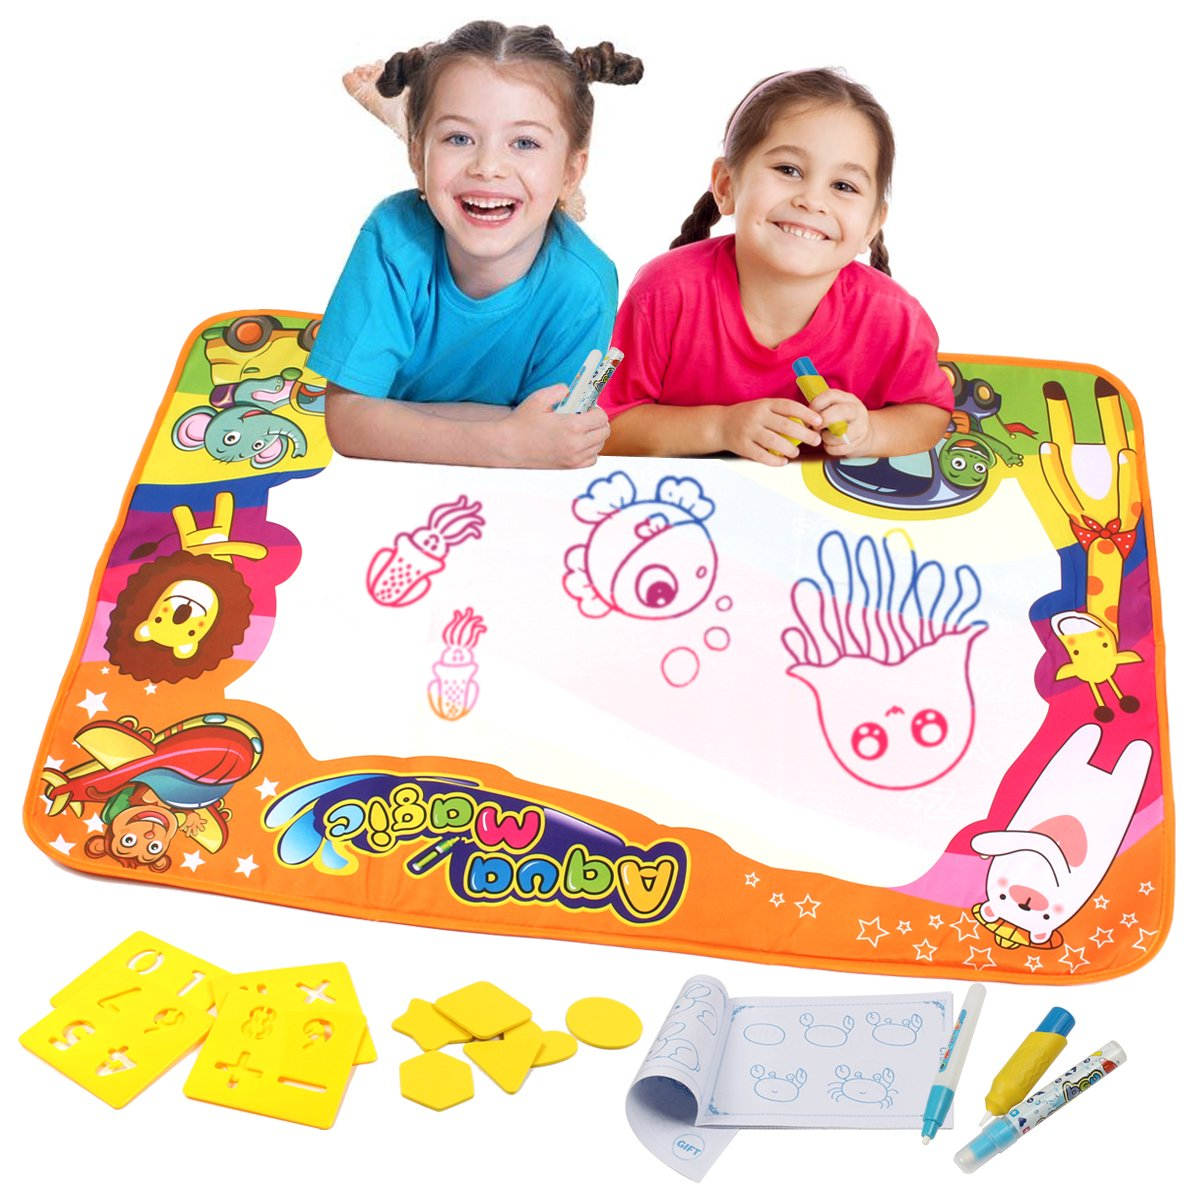 Aquadoodle Mat Aqua Doodle Mat, Kids Toys Large Water Drawing Mat Toddlers Painting Board Writing Mats in 6 Colors with 2 Magic Pens and 1 Brush for Boys Girls Educational Size 34.5'' X 22.5